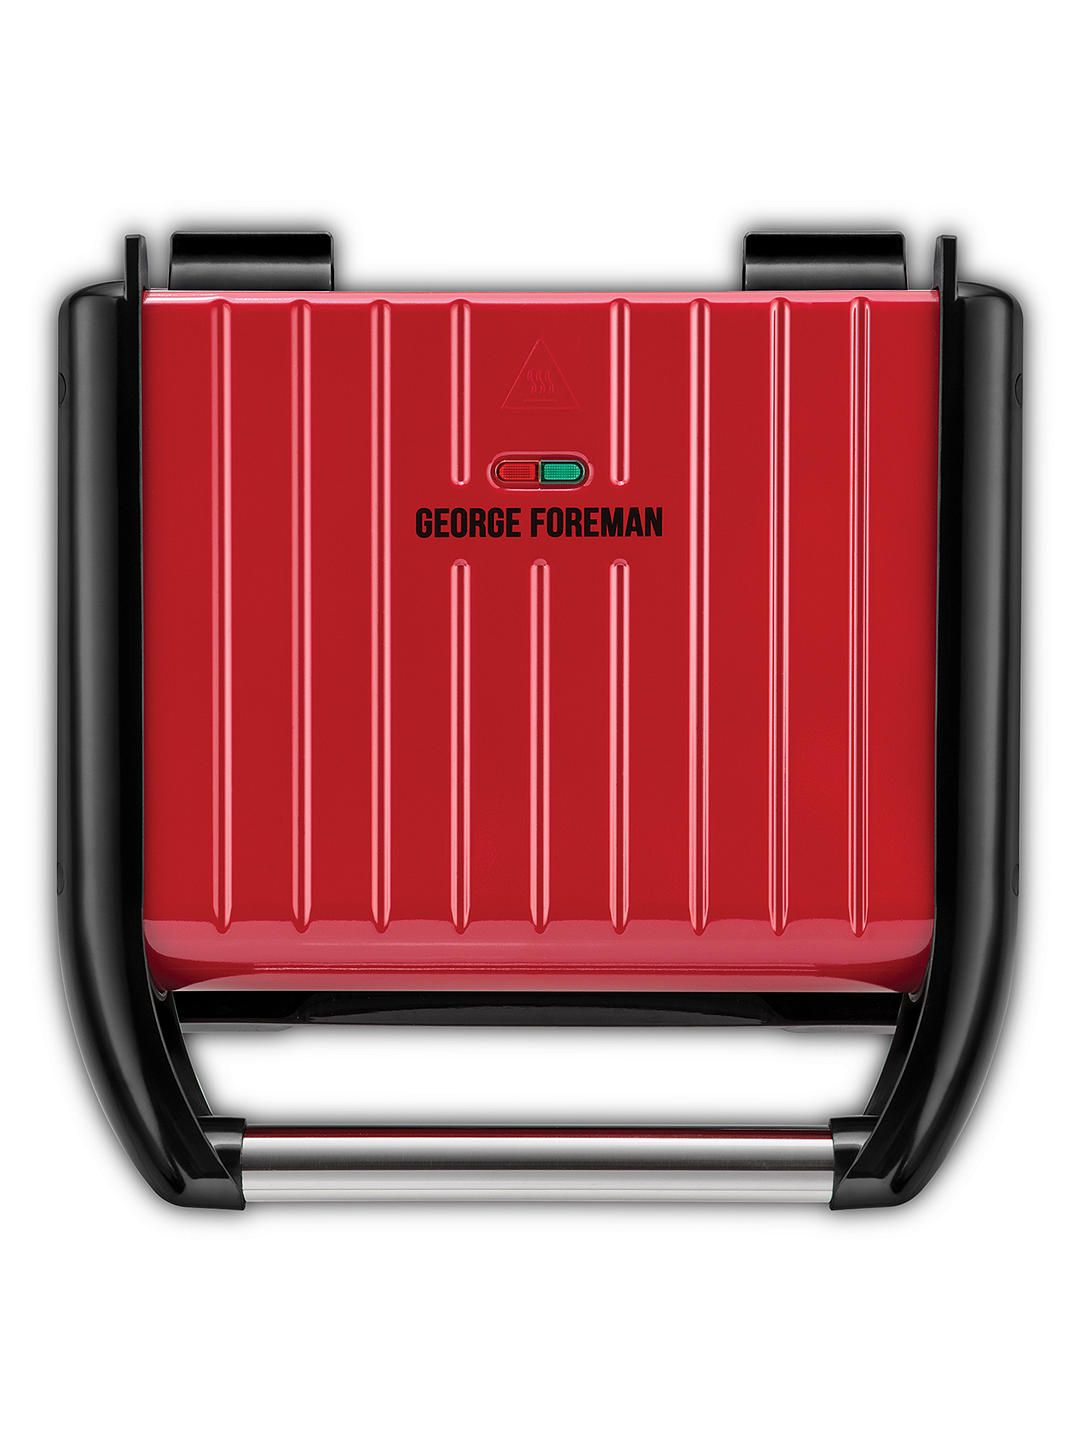 George Foreman grill – healthy eating kitchen gadgets